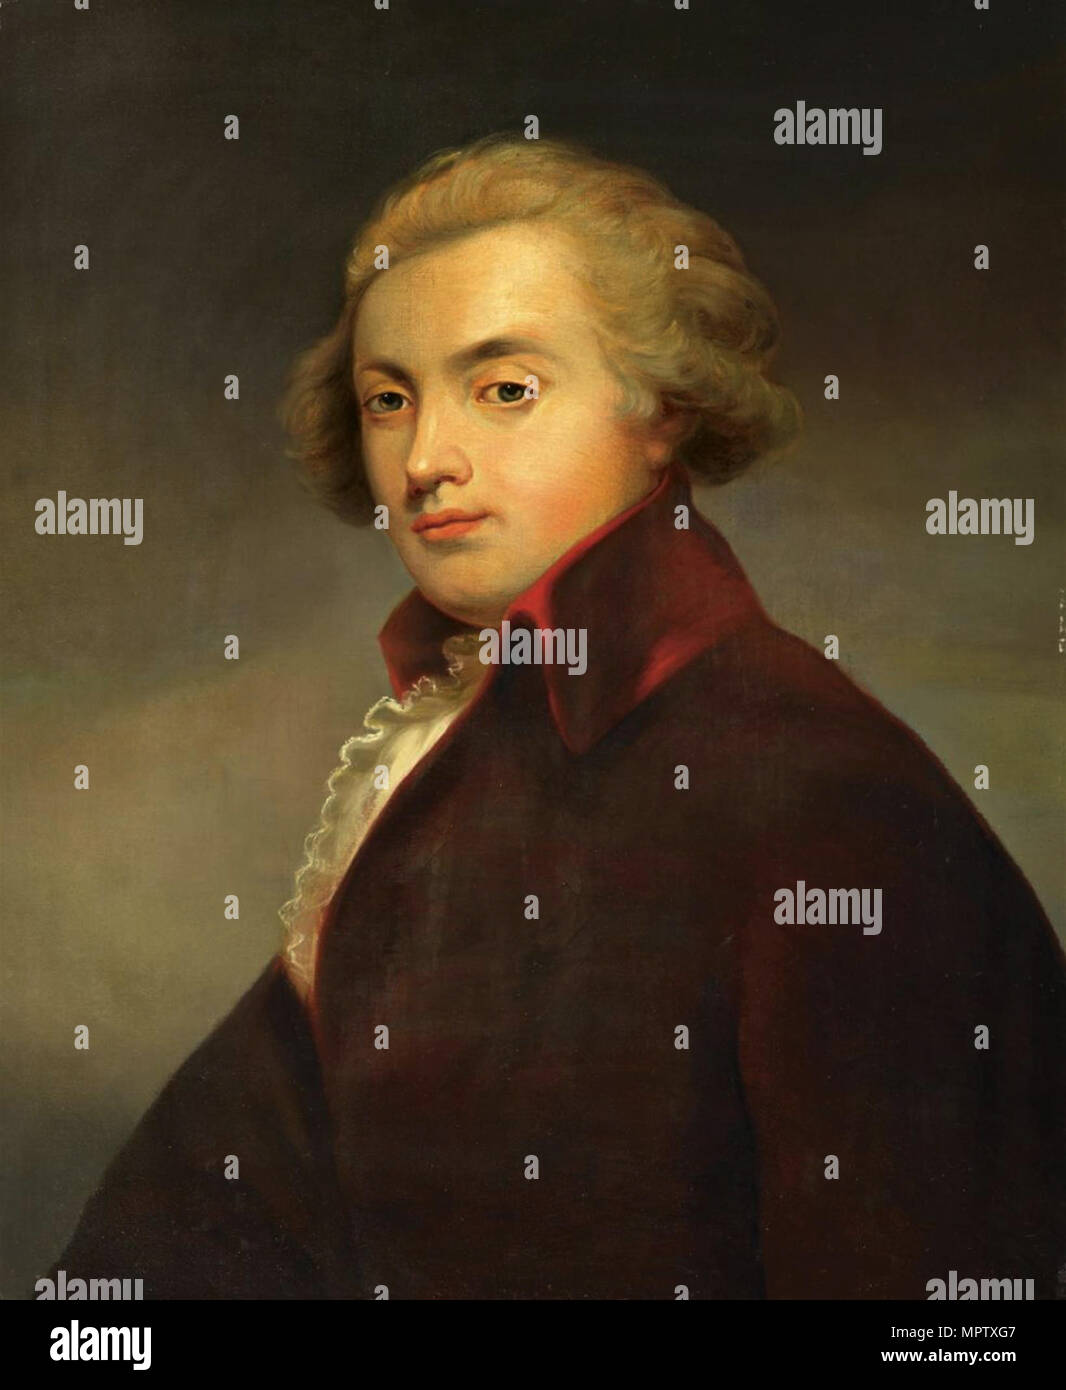 Portrait of the composer Wolfgang Amadeus Mozart (1756-1791). - Stock Image